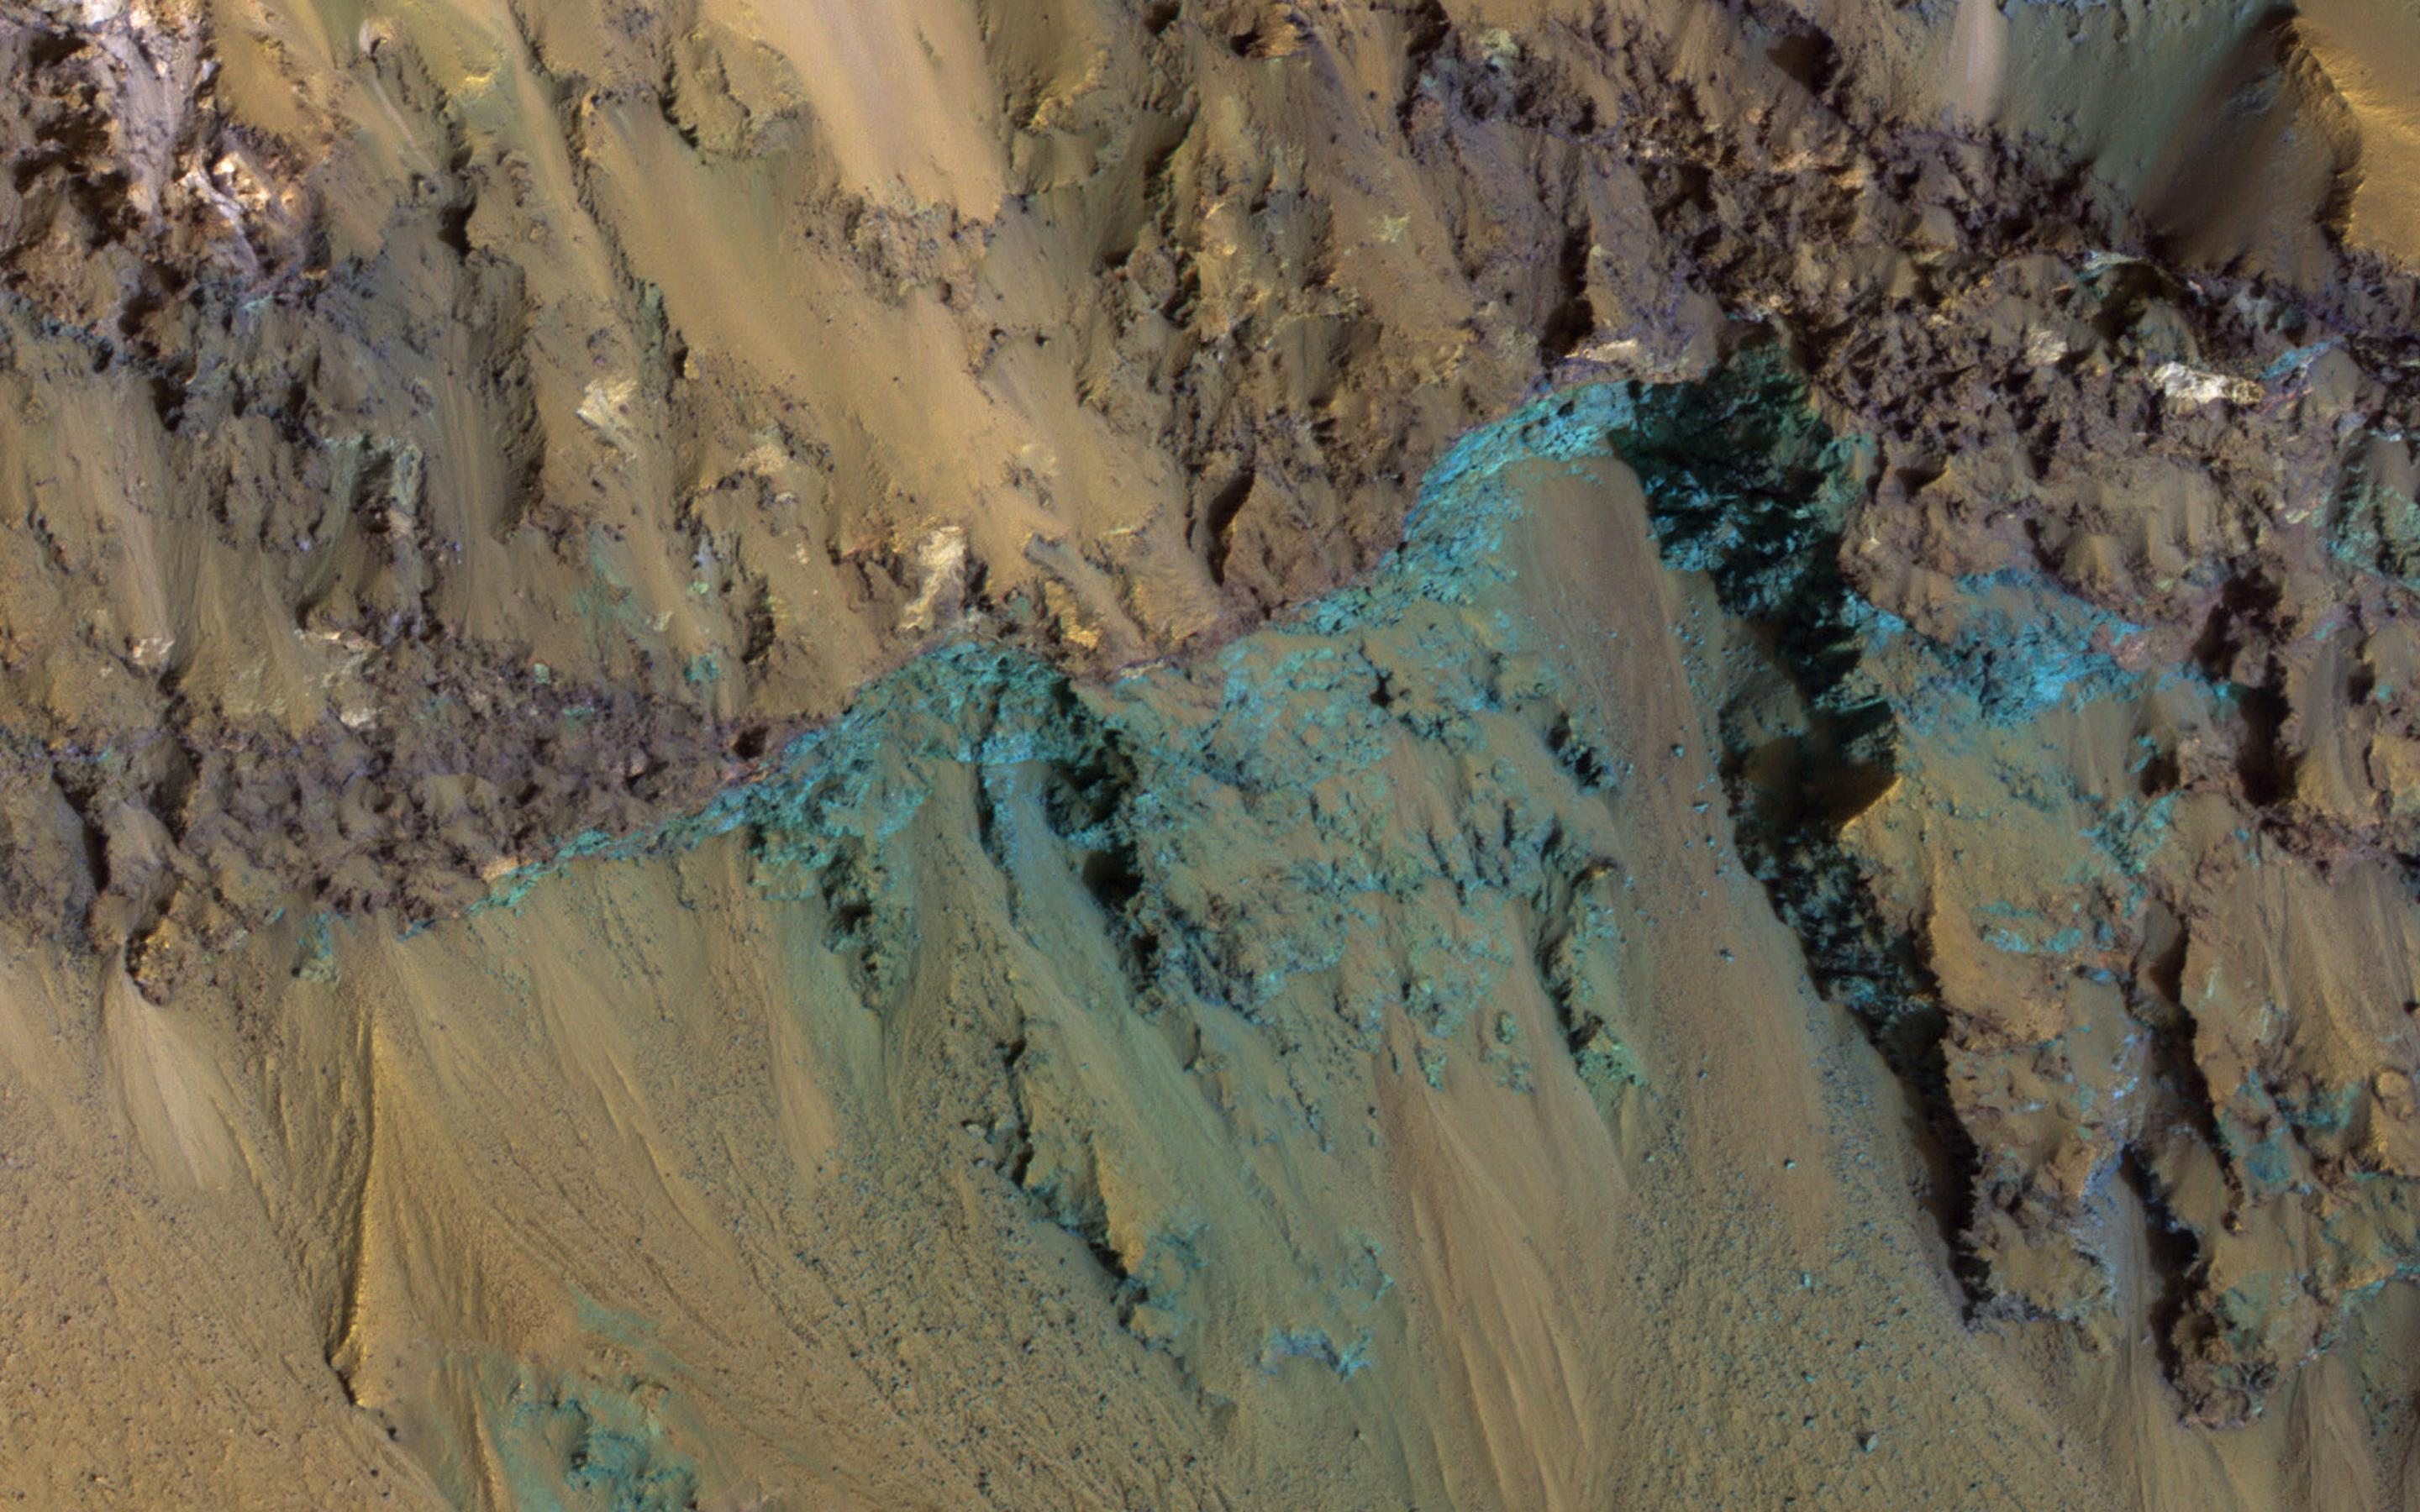 Exposed Bedrock on the Red Planet's Hale Crater